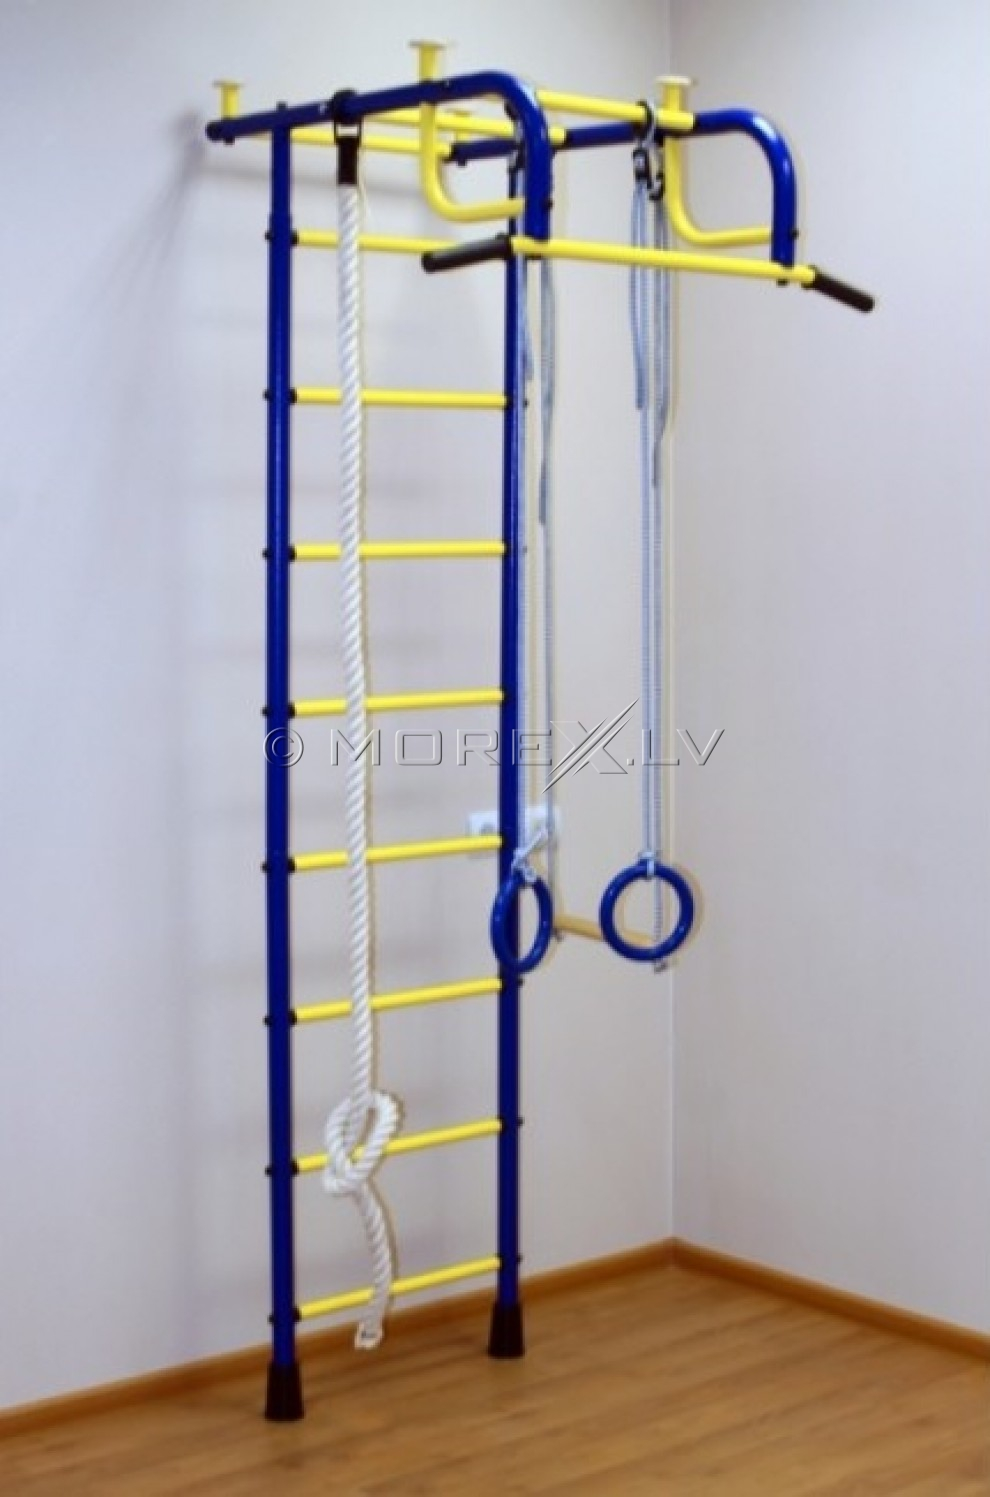 Swedish wall for children Pioner-1 blue-yellow (swedish wall)